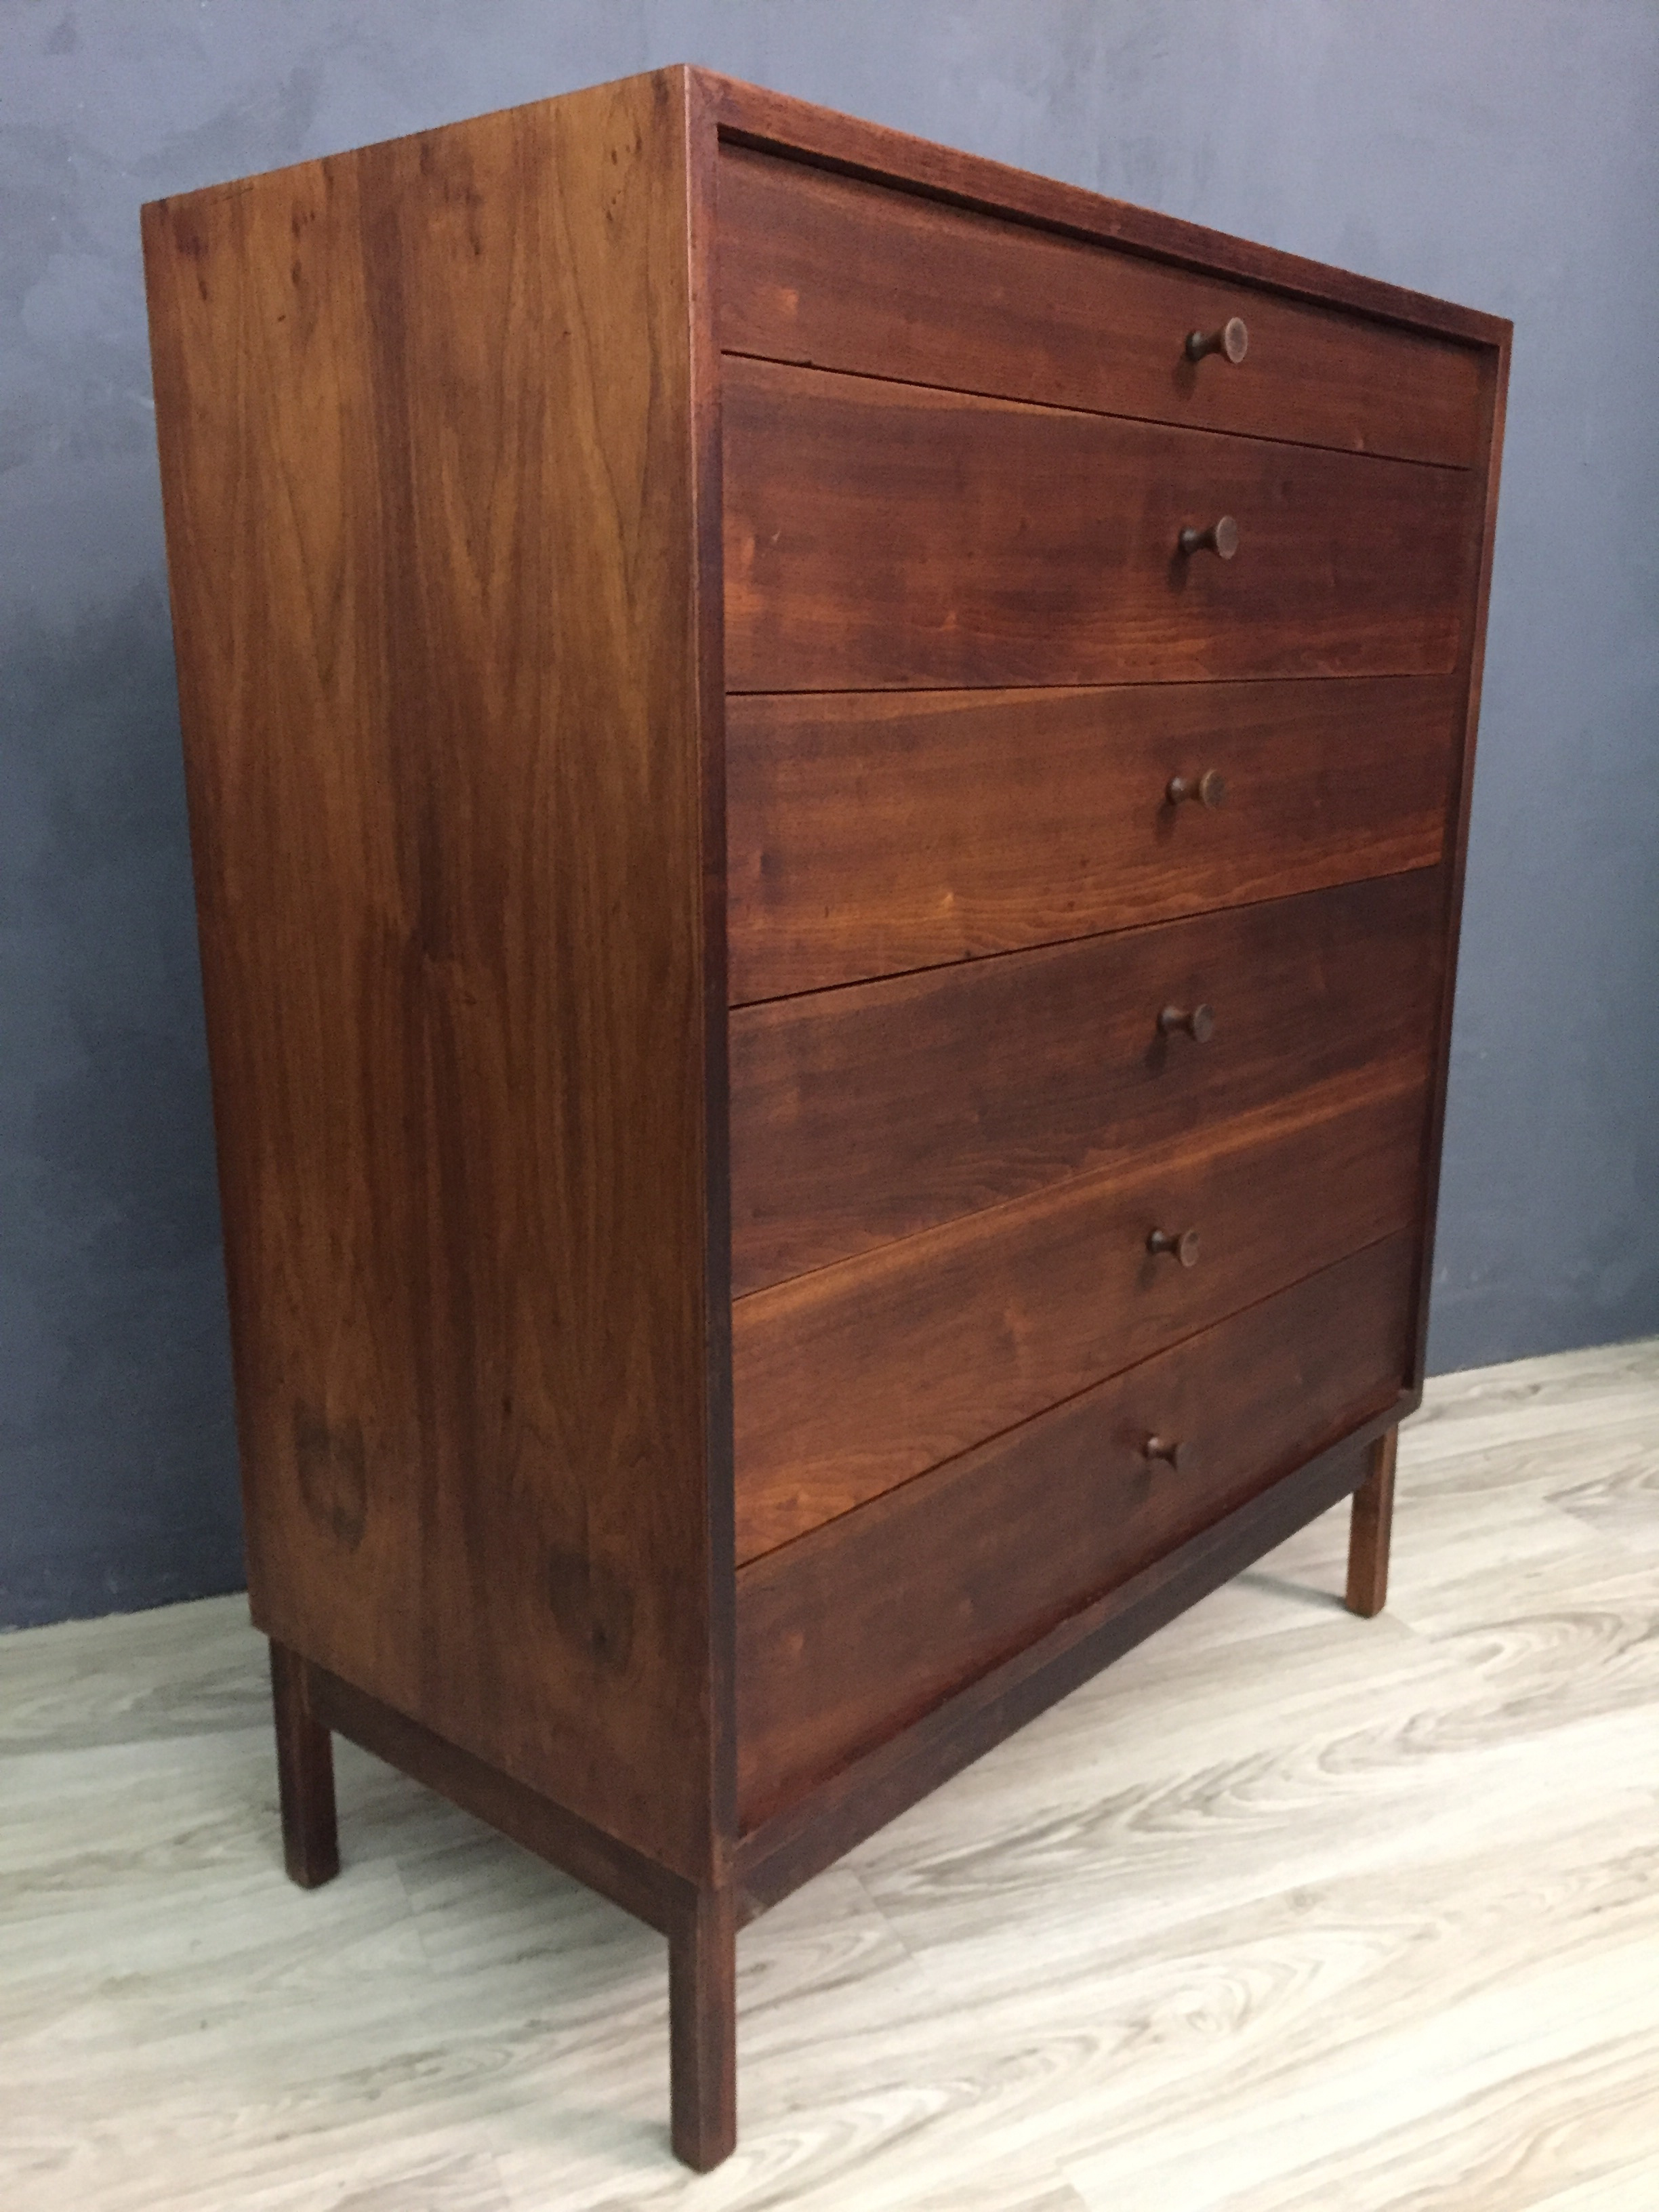 Calvin Danish Modern Upright Walnut Bureau